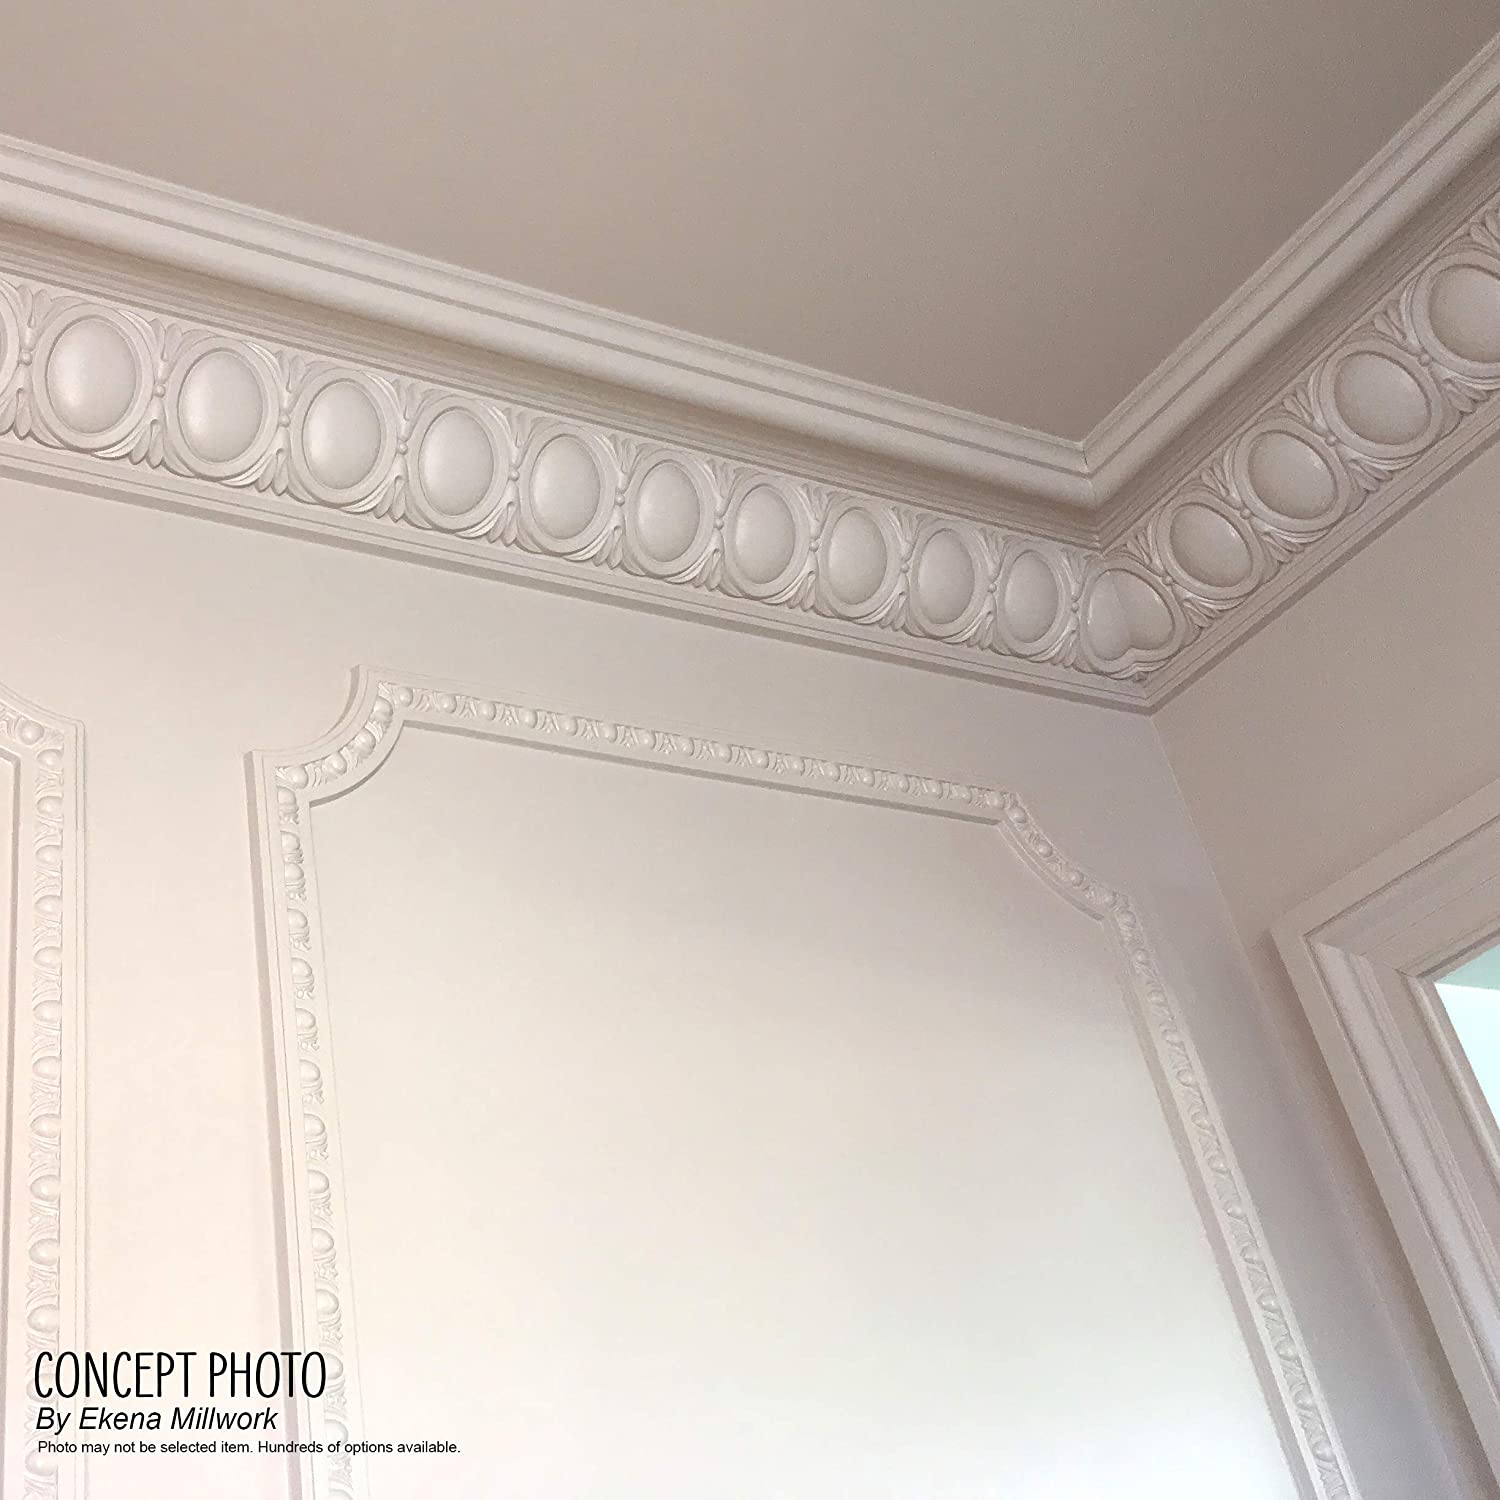 Factory Primed Ekena Millwork MLD08X08X11AC Acanthus Leaf with Bead /& Barrel Crown Moulding 8 1//4H x 8P x 11 1//2F x 94 1//2L